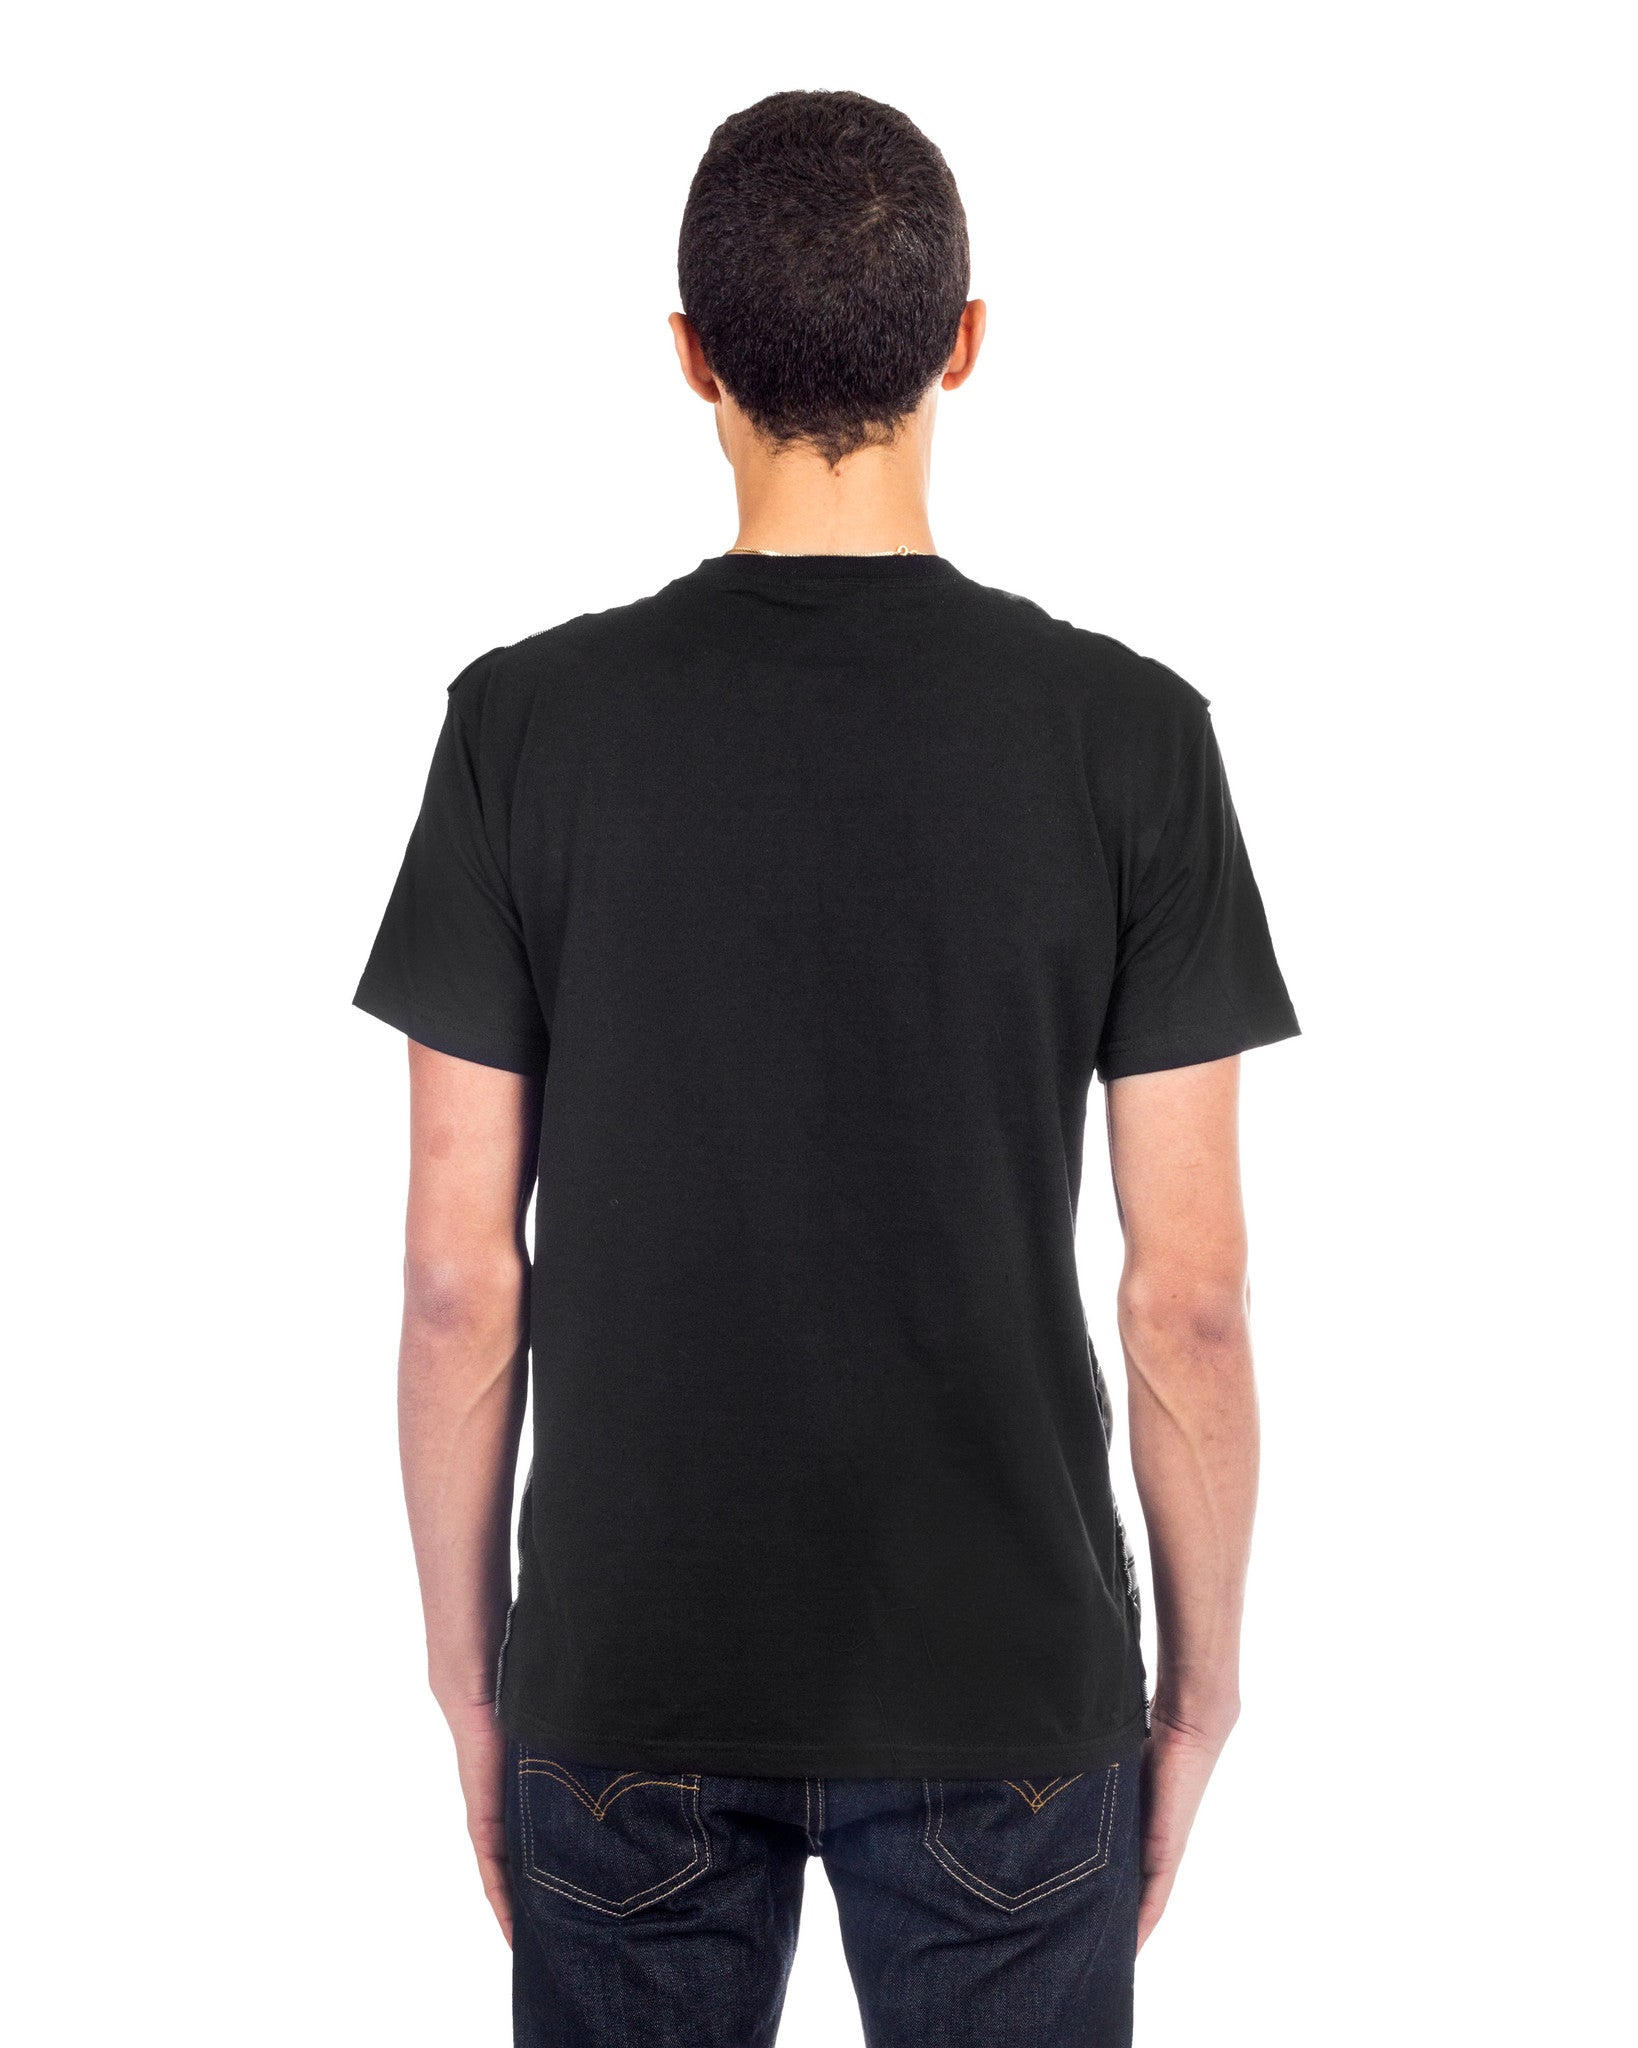 SHALE CONTRAST TEE - Eros Mortis